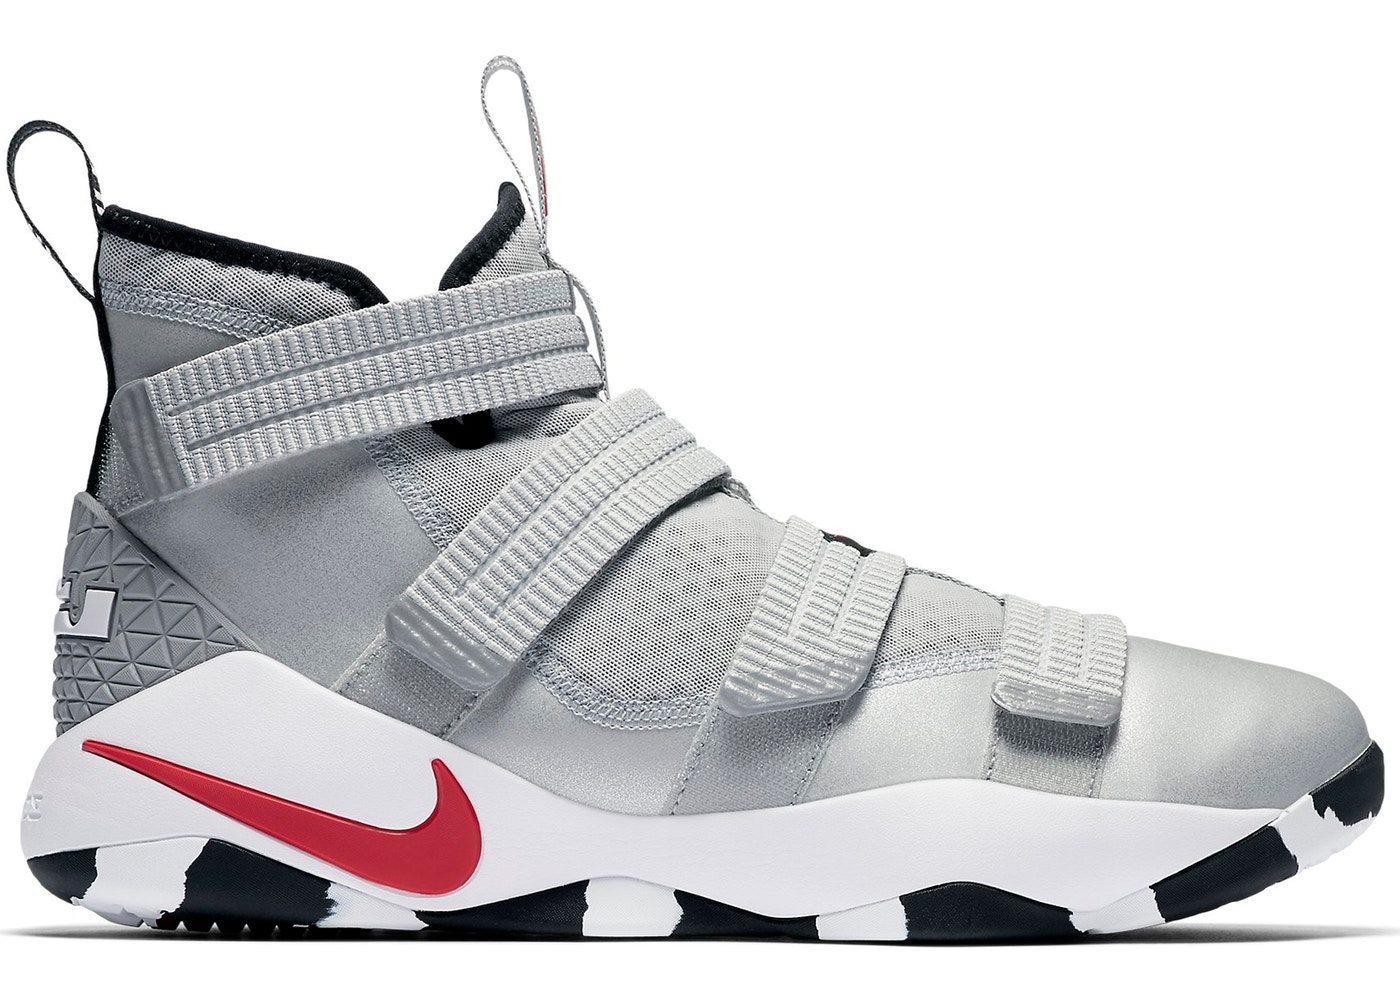 f4860c4911da4 Sell. or Ask. Size: 14. View All Bids. Nike LeBron Zoom Soldier 11 Silver  Bullet